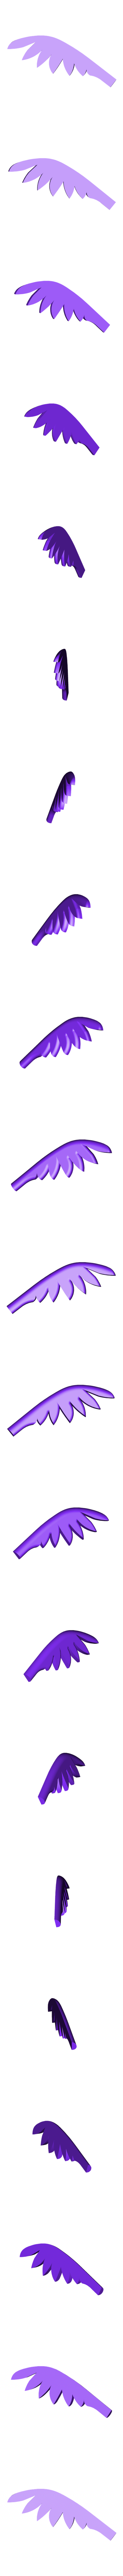 Wing_Right.stl Download free STL file Rainbow Toucan • 3D printing template, 3rdesignworks